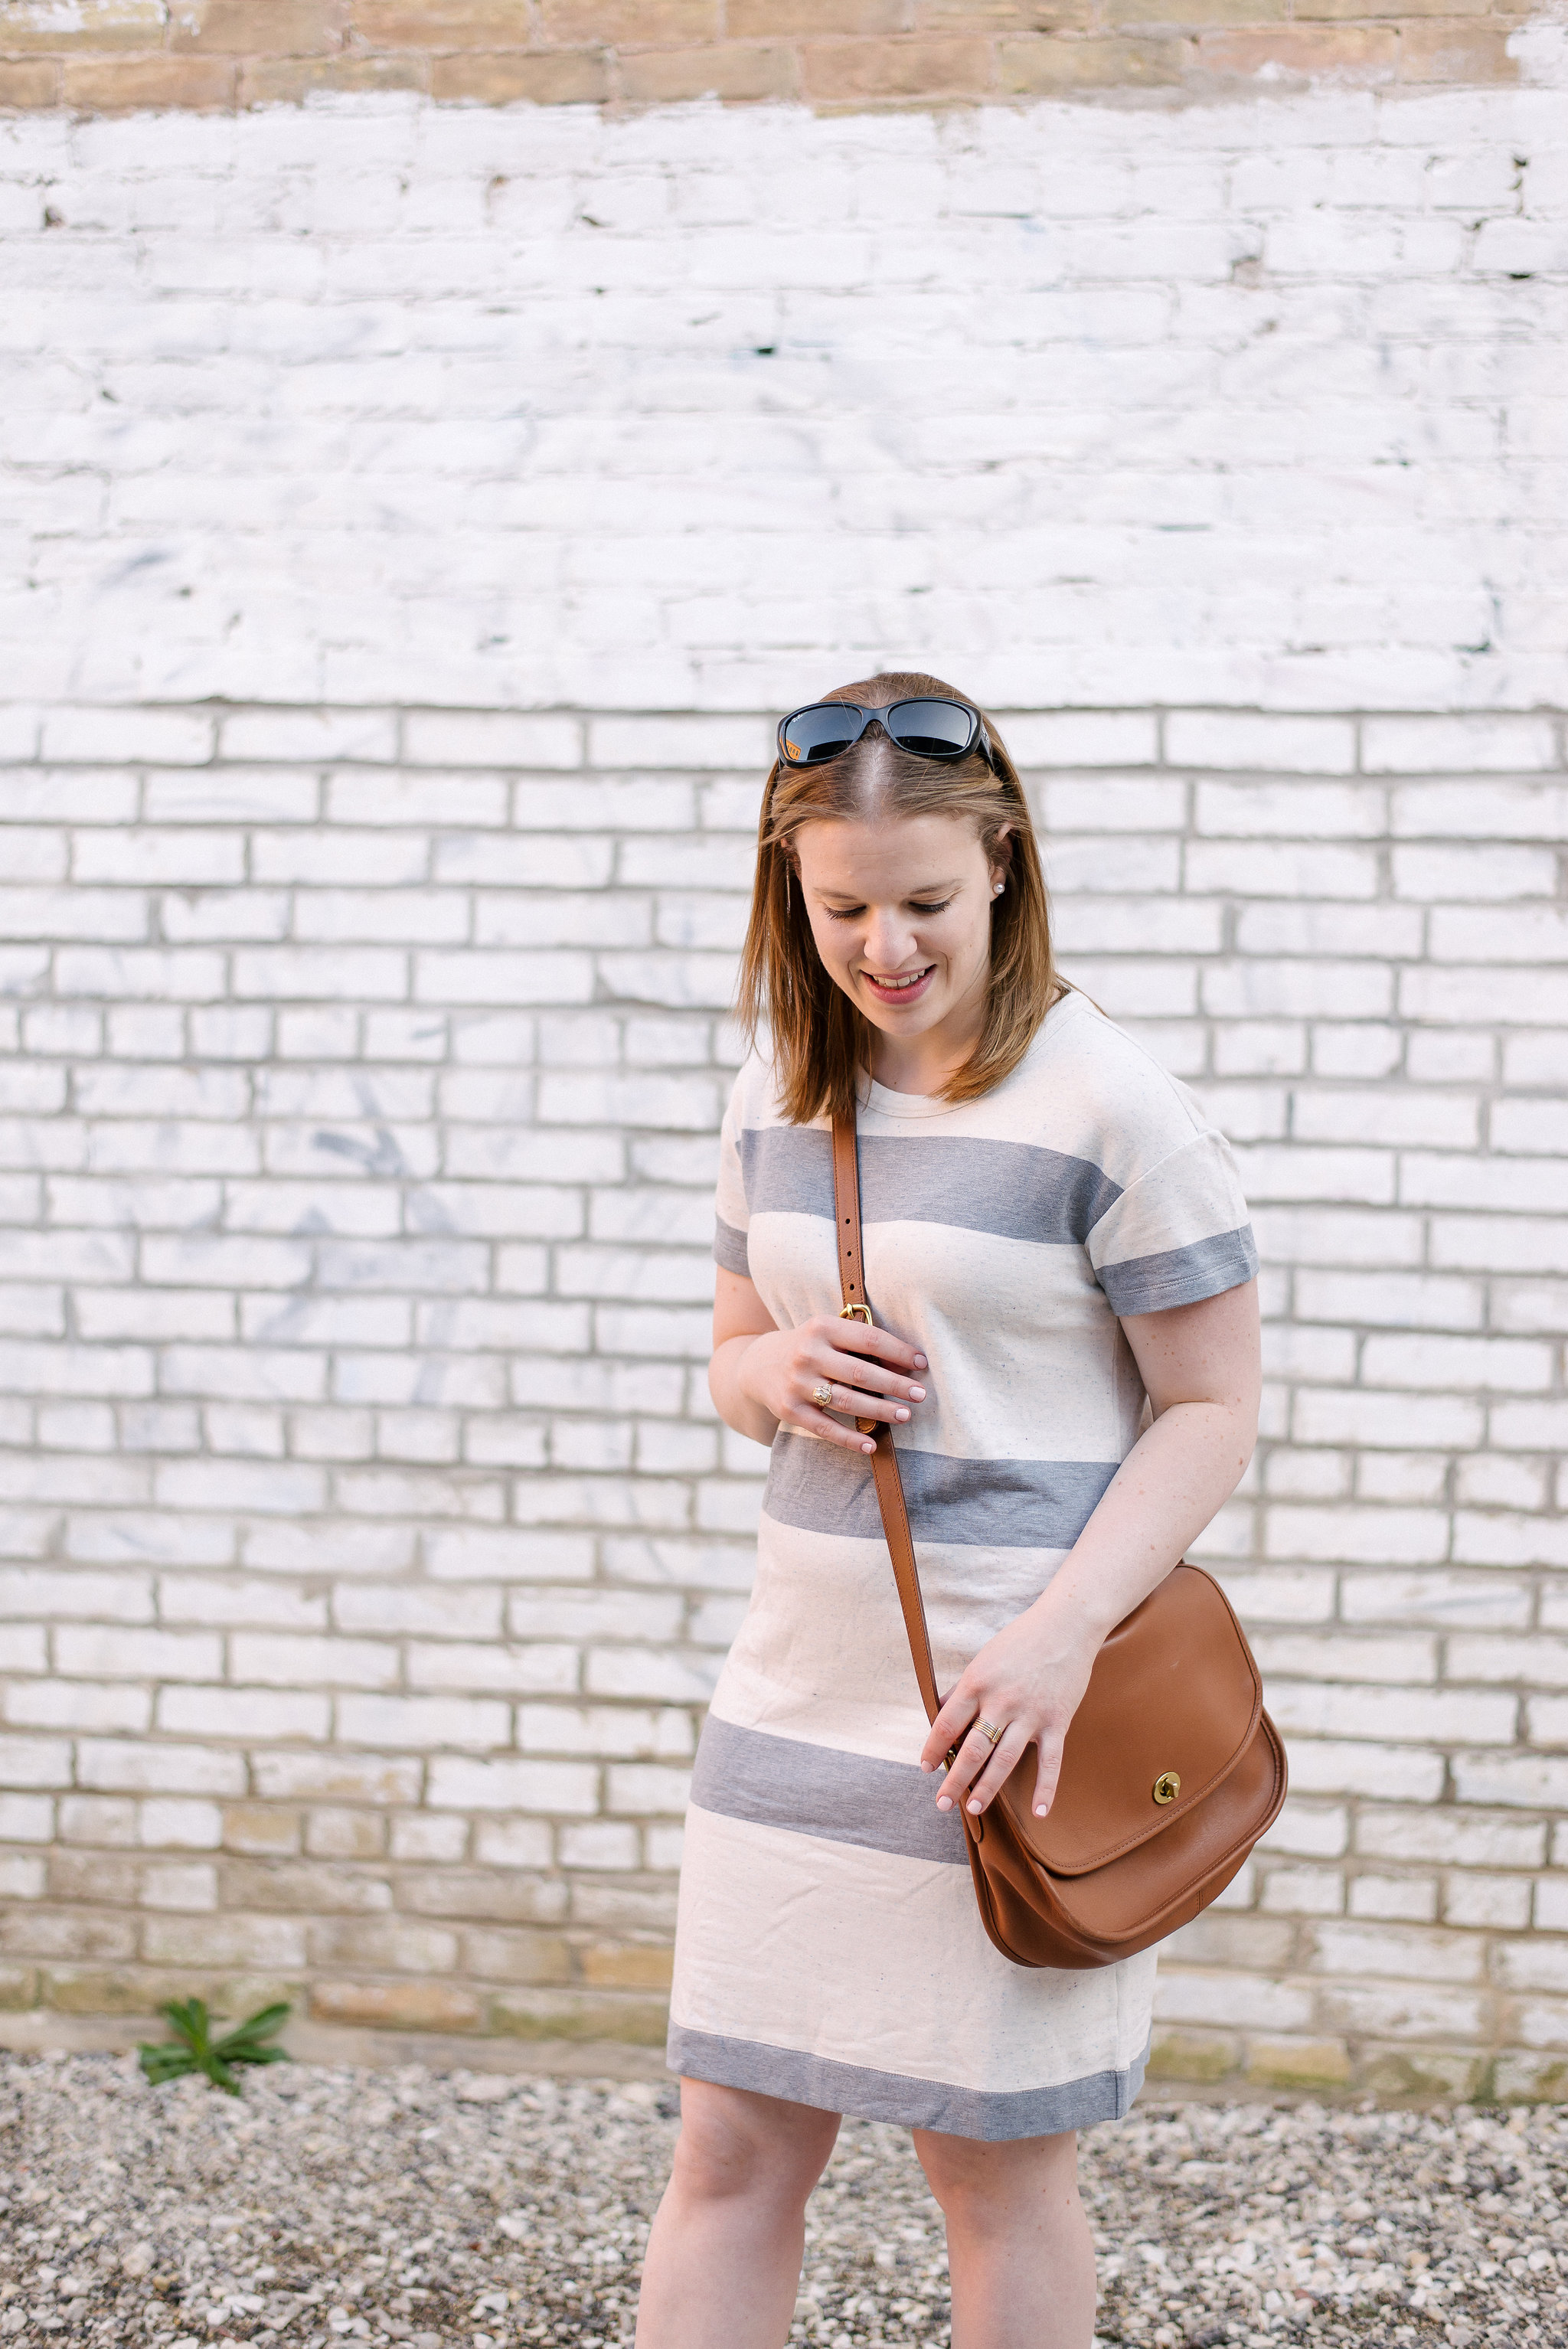 The Striped Tee Dress | Something Good, @danaerinw ,